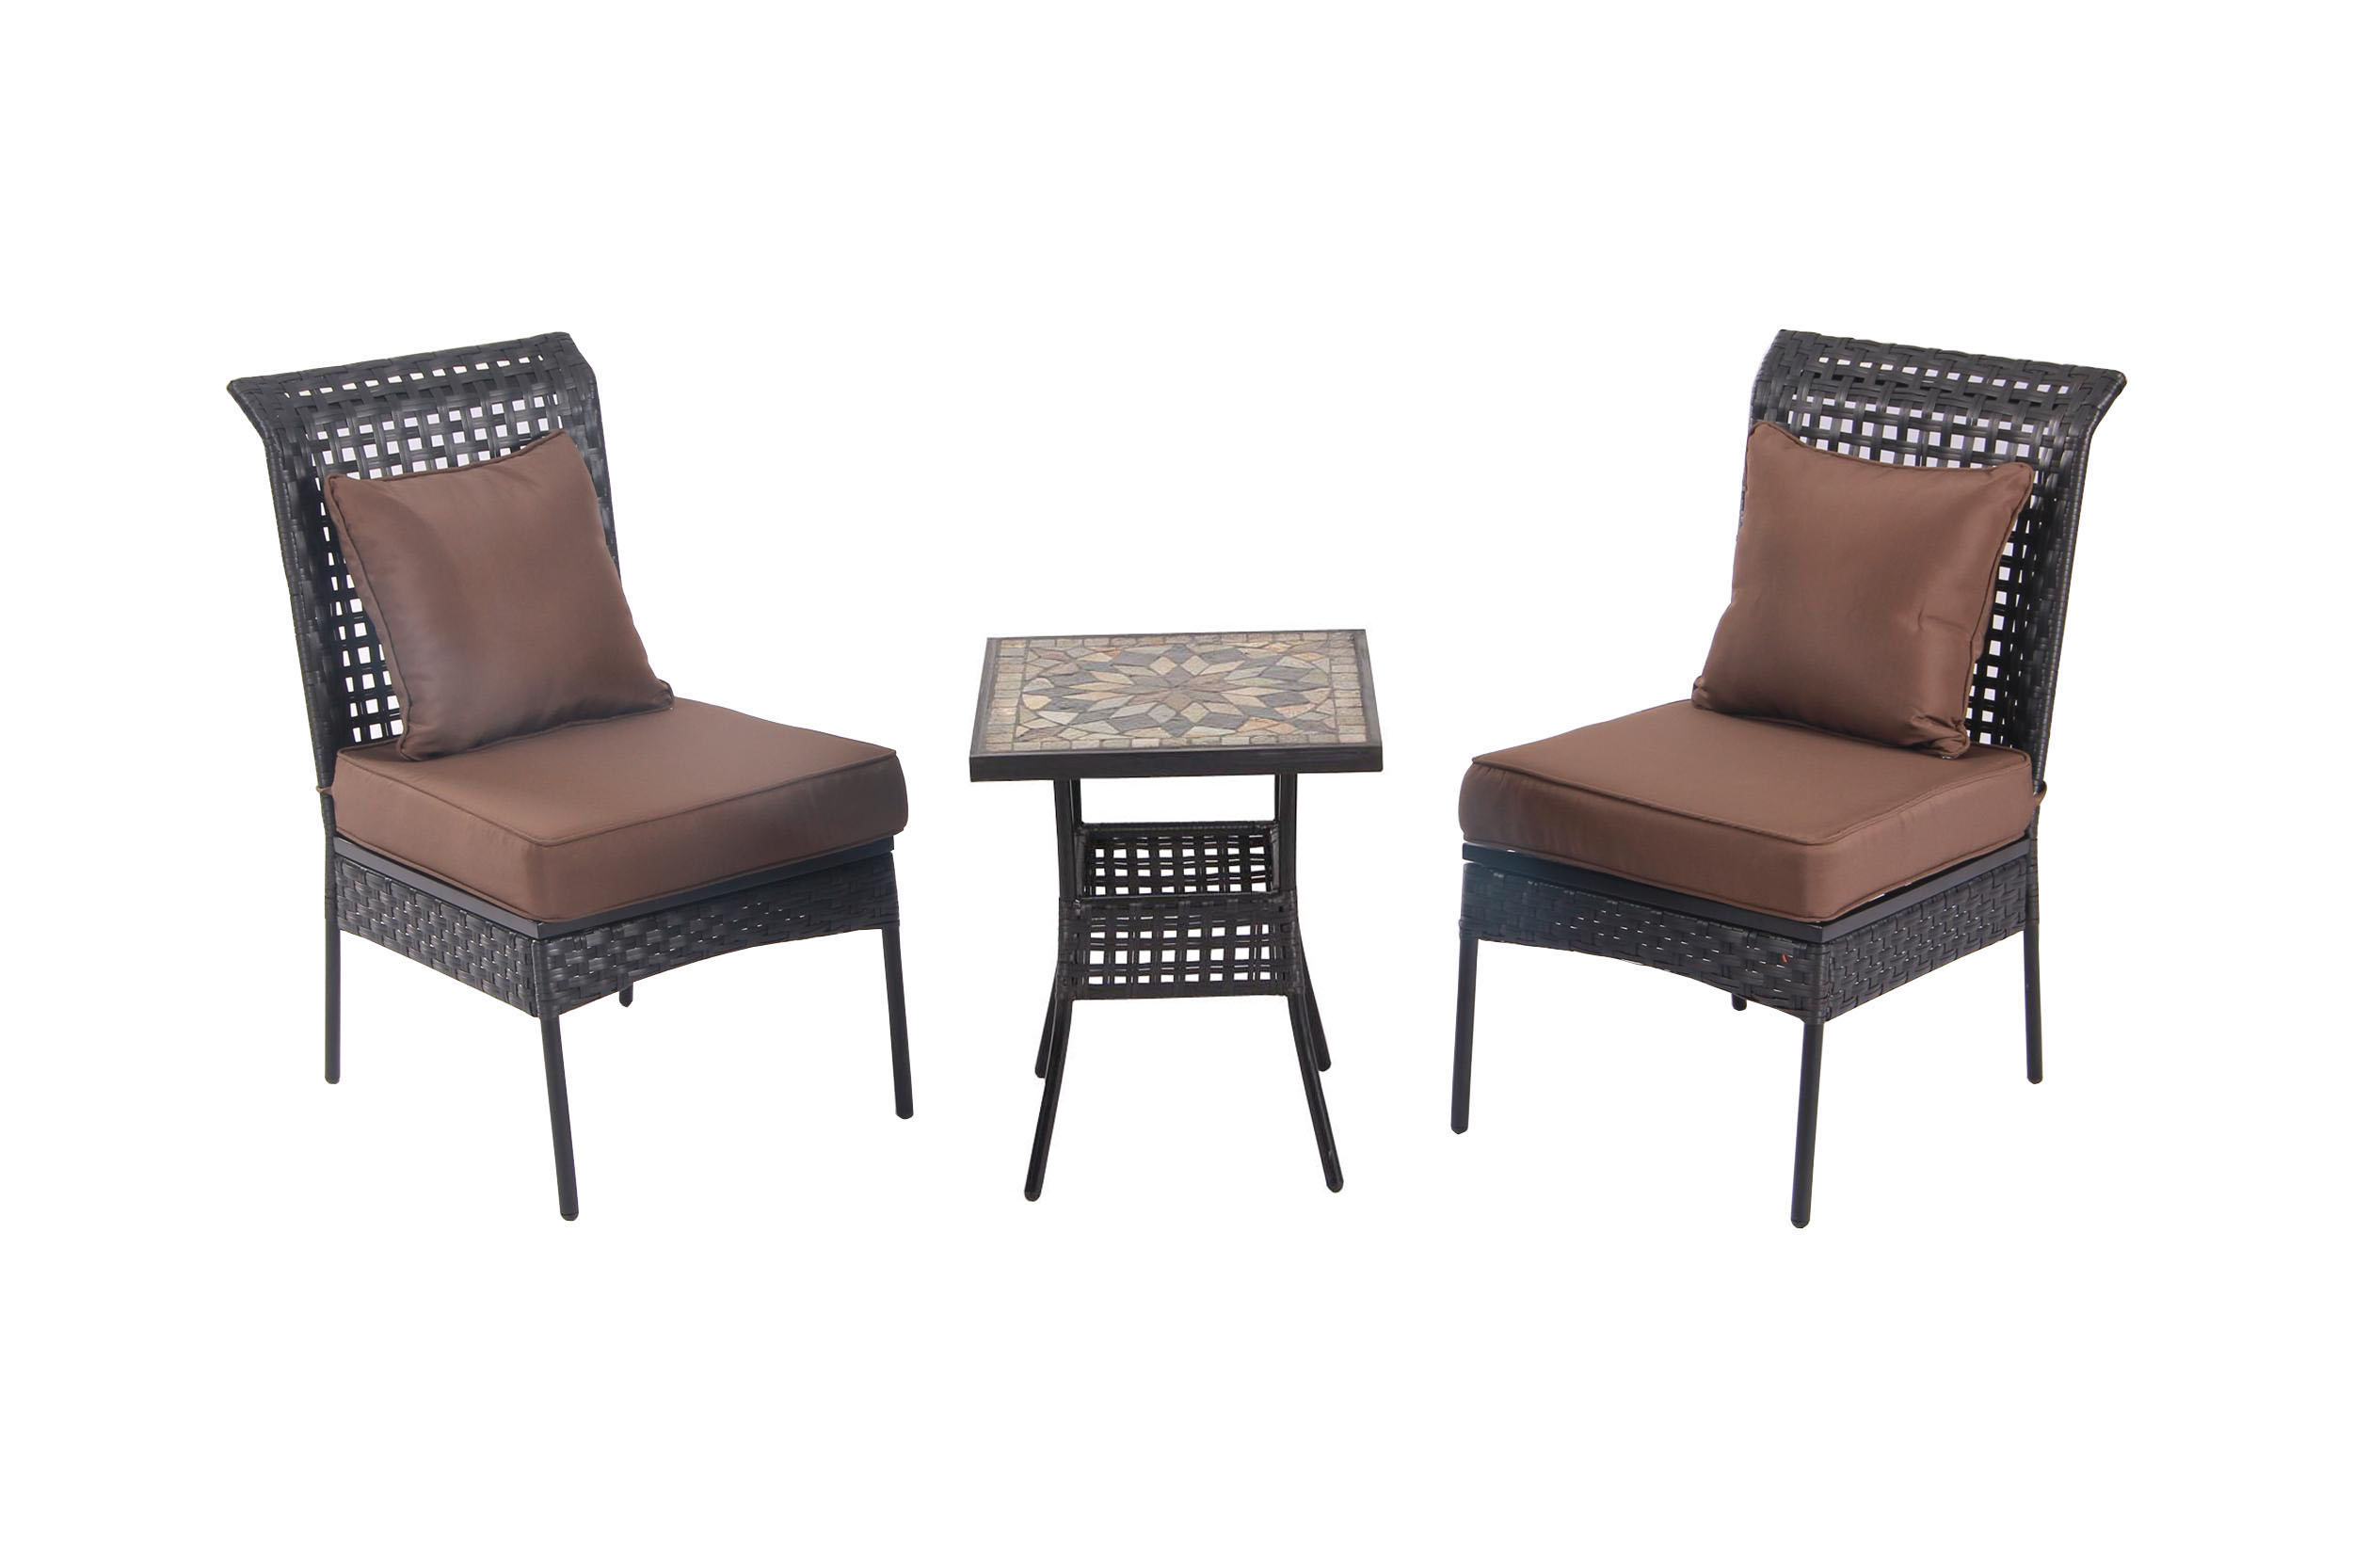 bistro table and chairs kmart ergonomic chair manufacturers patio sense zuni all weather wicker 3pc set